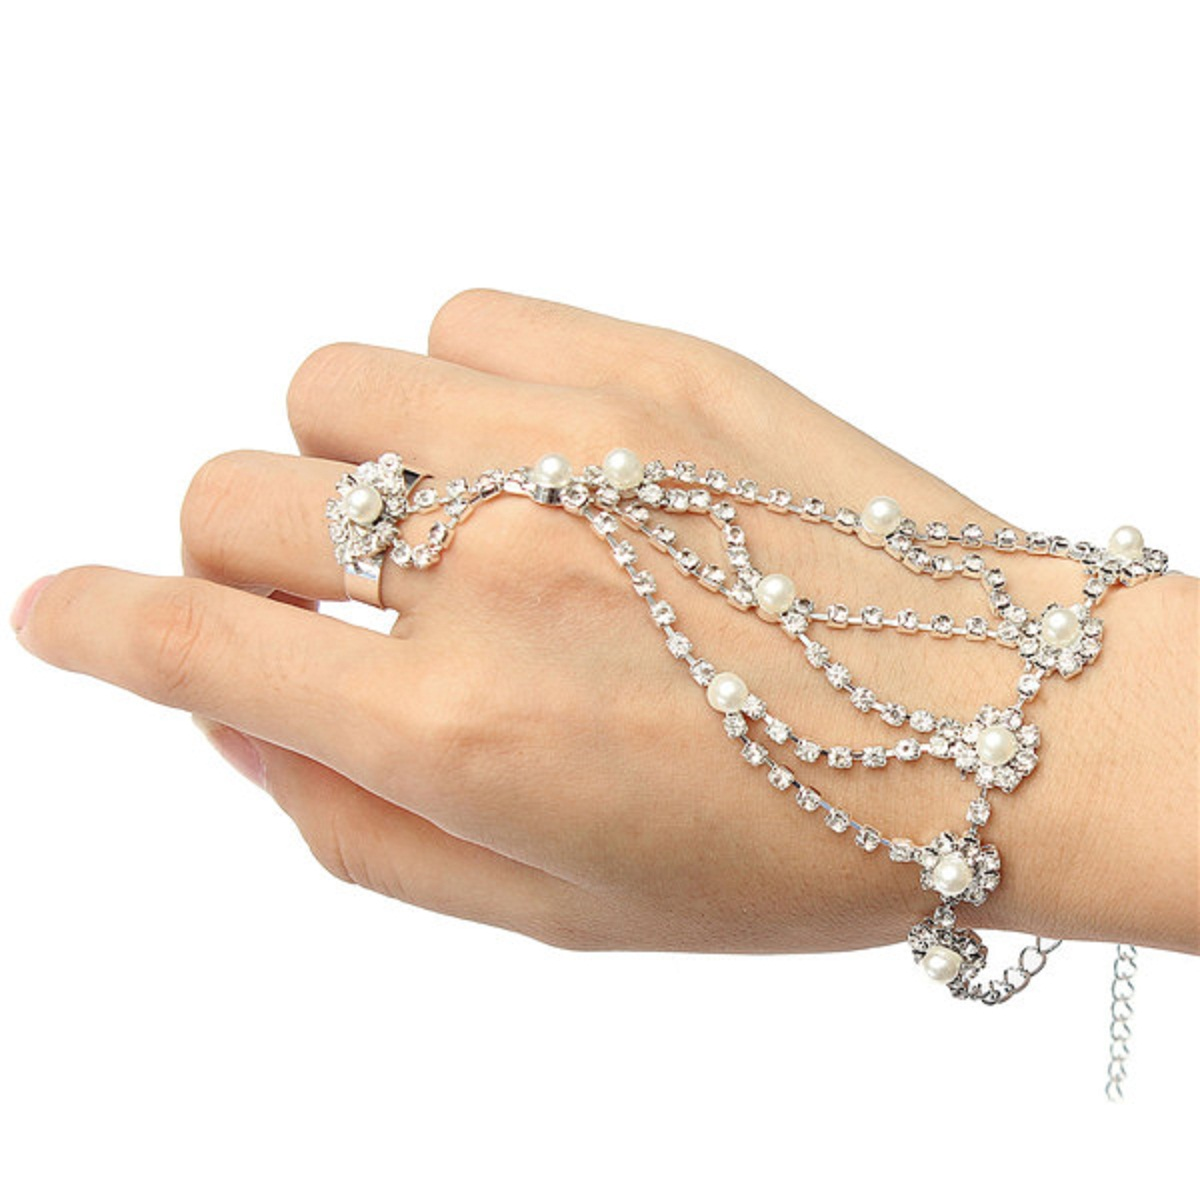 Beautiful Bracelet Ring chain Images HD Wallpaper - all 4u wallpaper